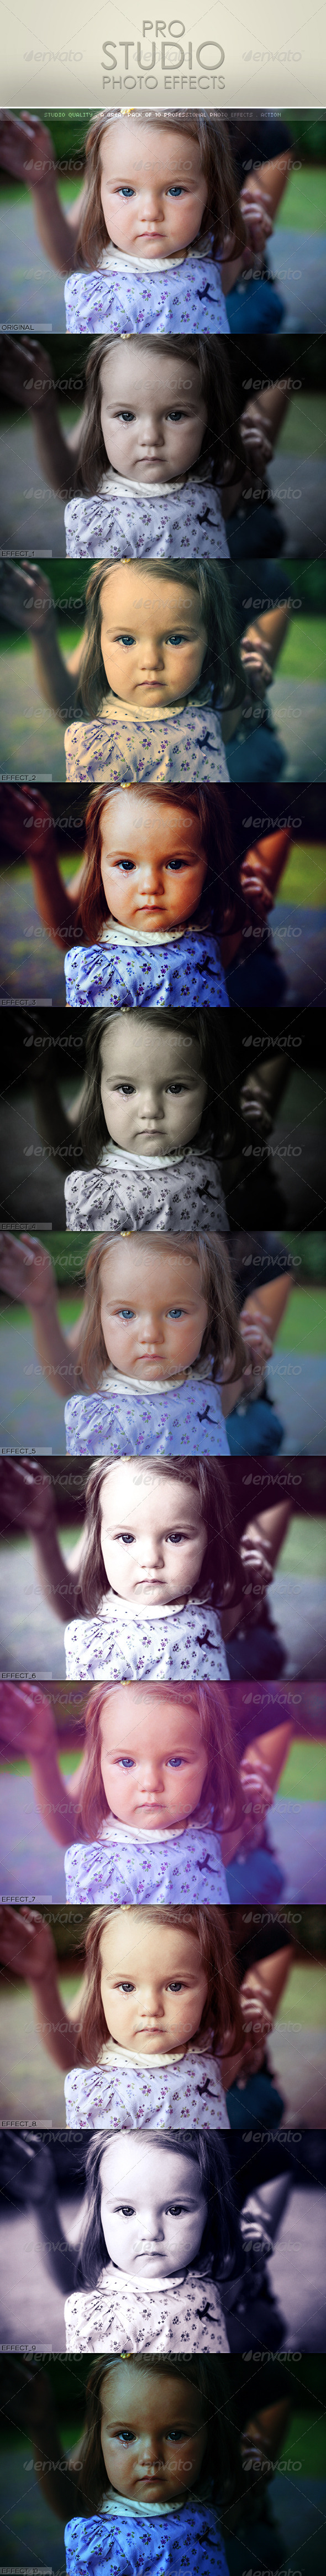 10 Pro Studio Photo Effect Actions - Photo Effects Actions